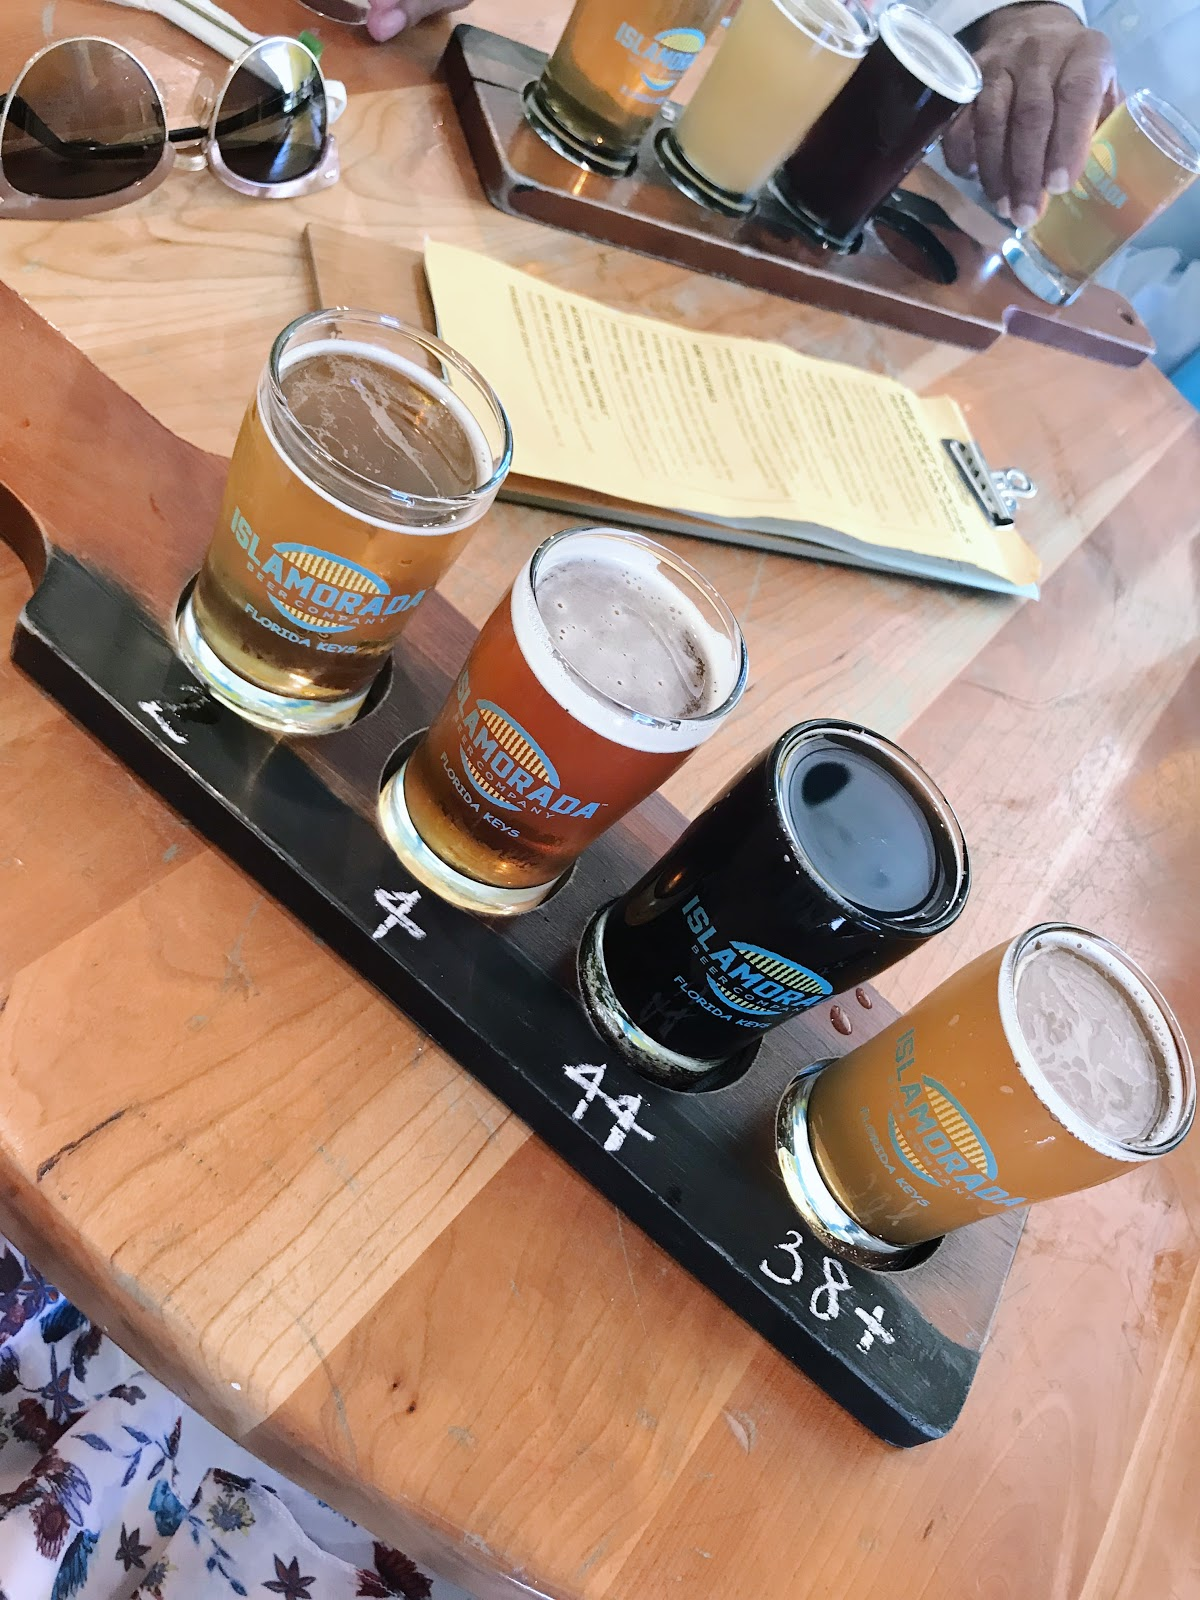 Islamorada beer company flight tasting